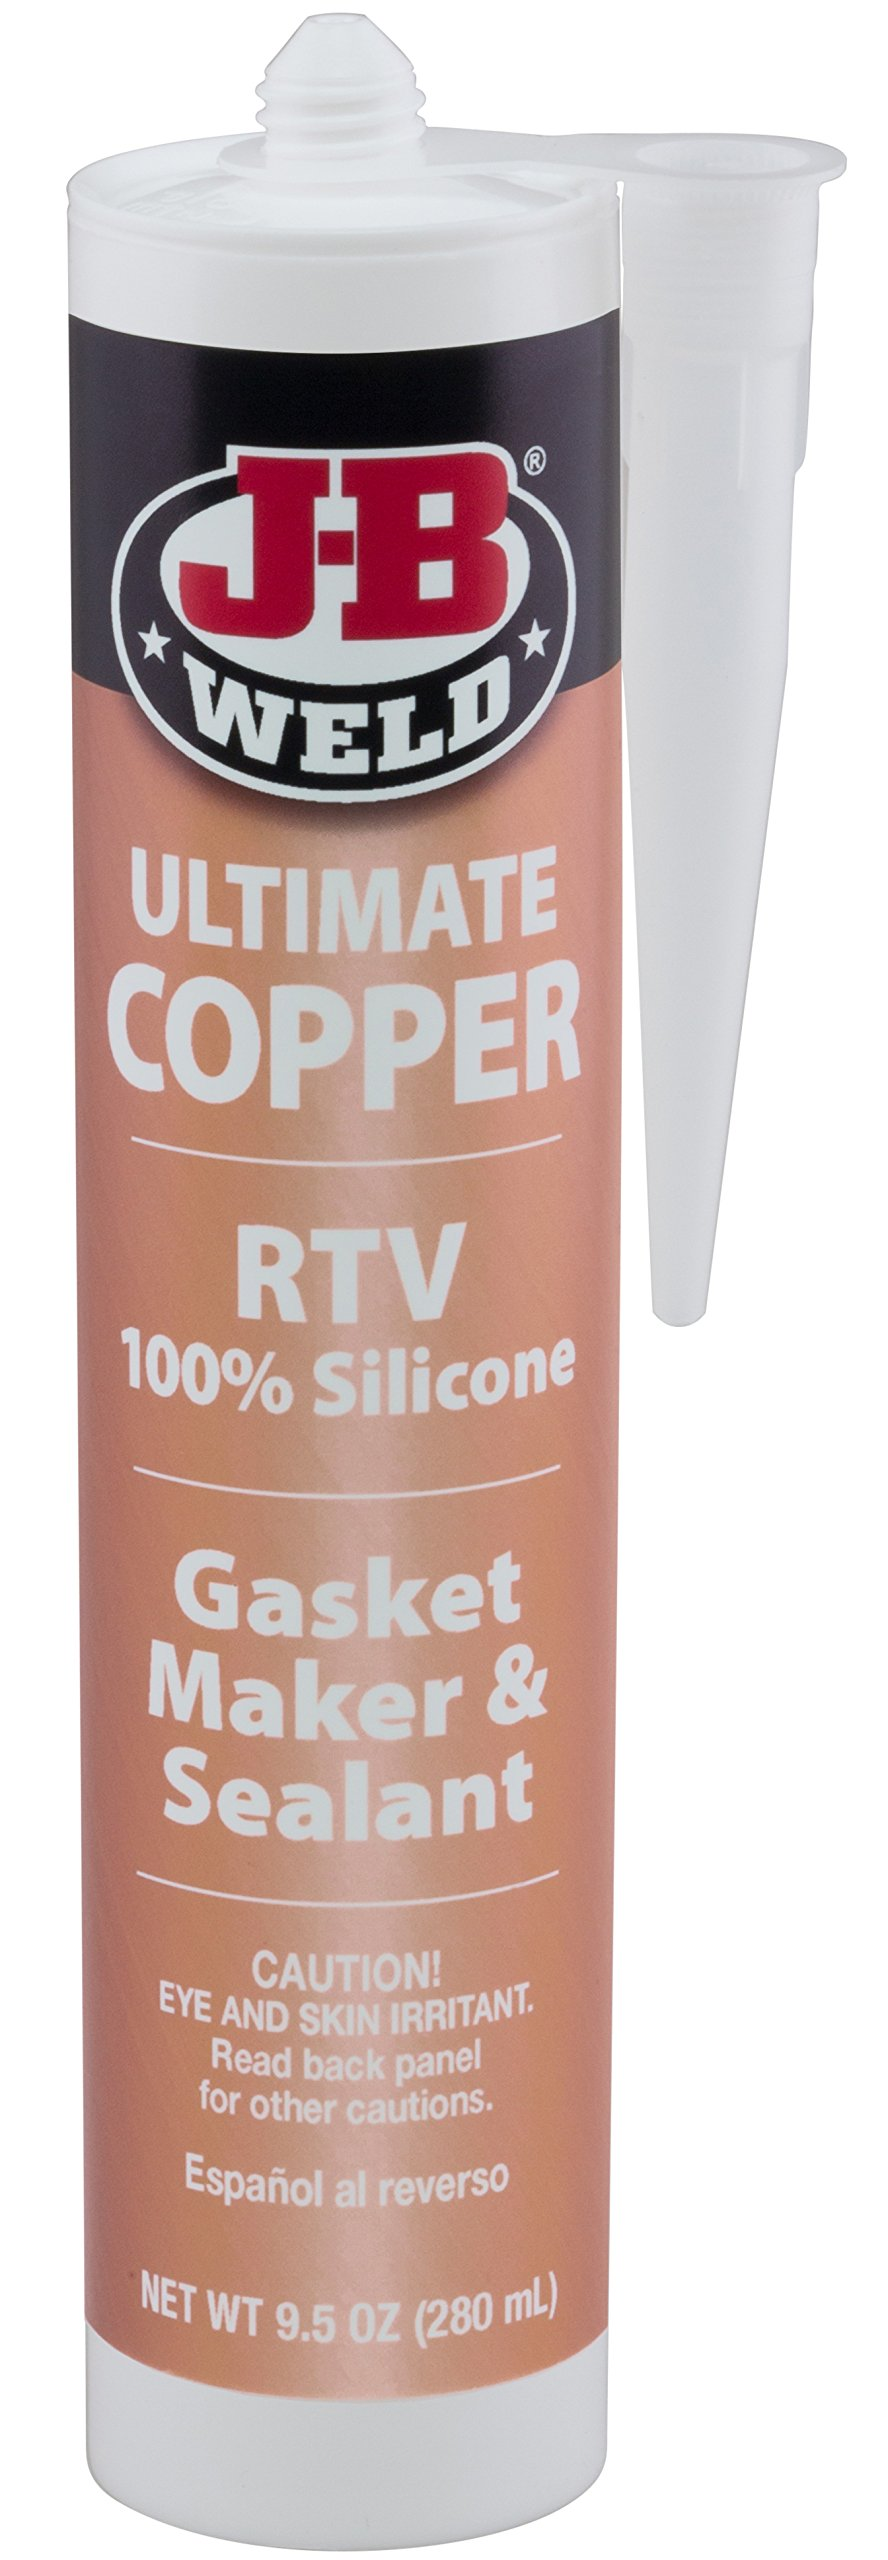 J-B Weld 32925 Ultimate Copper High Temperature RTV Silicone Gasket Maker and Sealant - 9.5 oz.